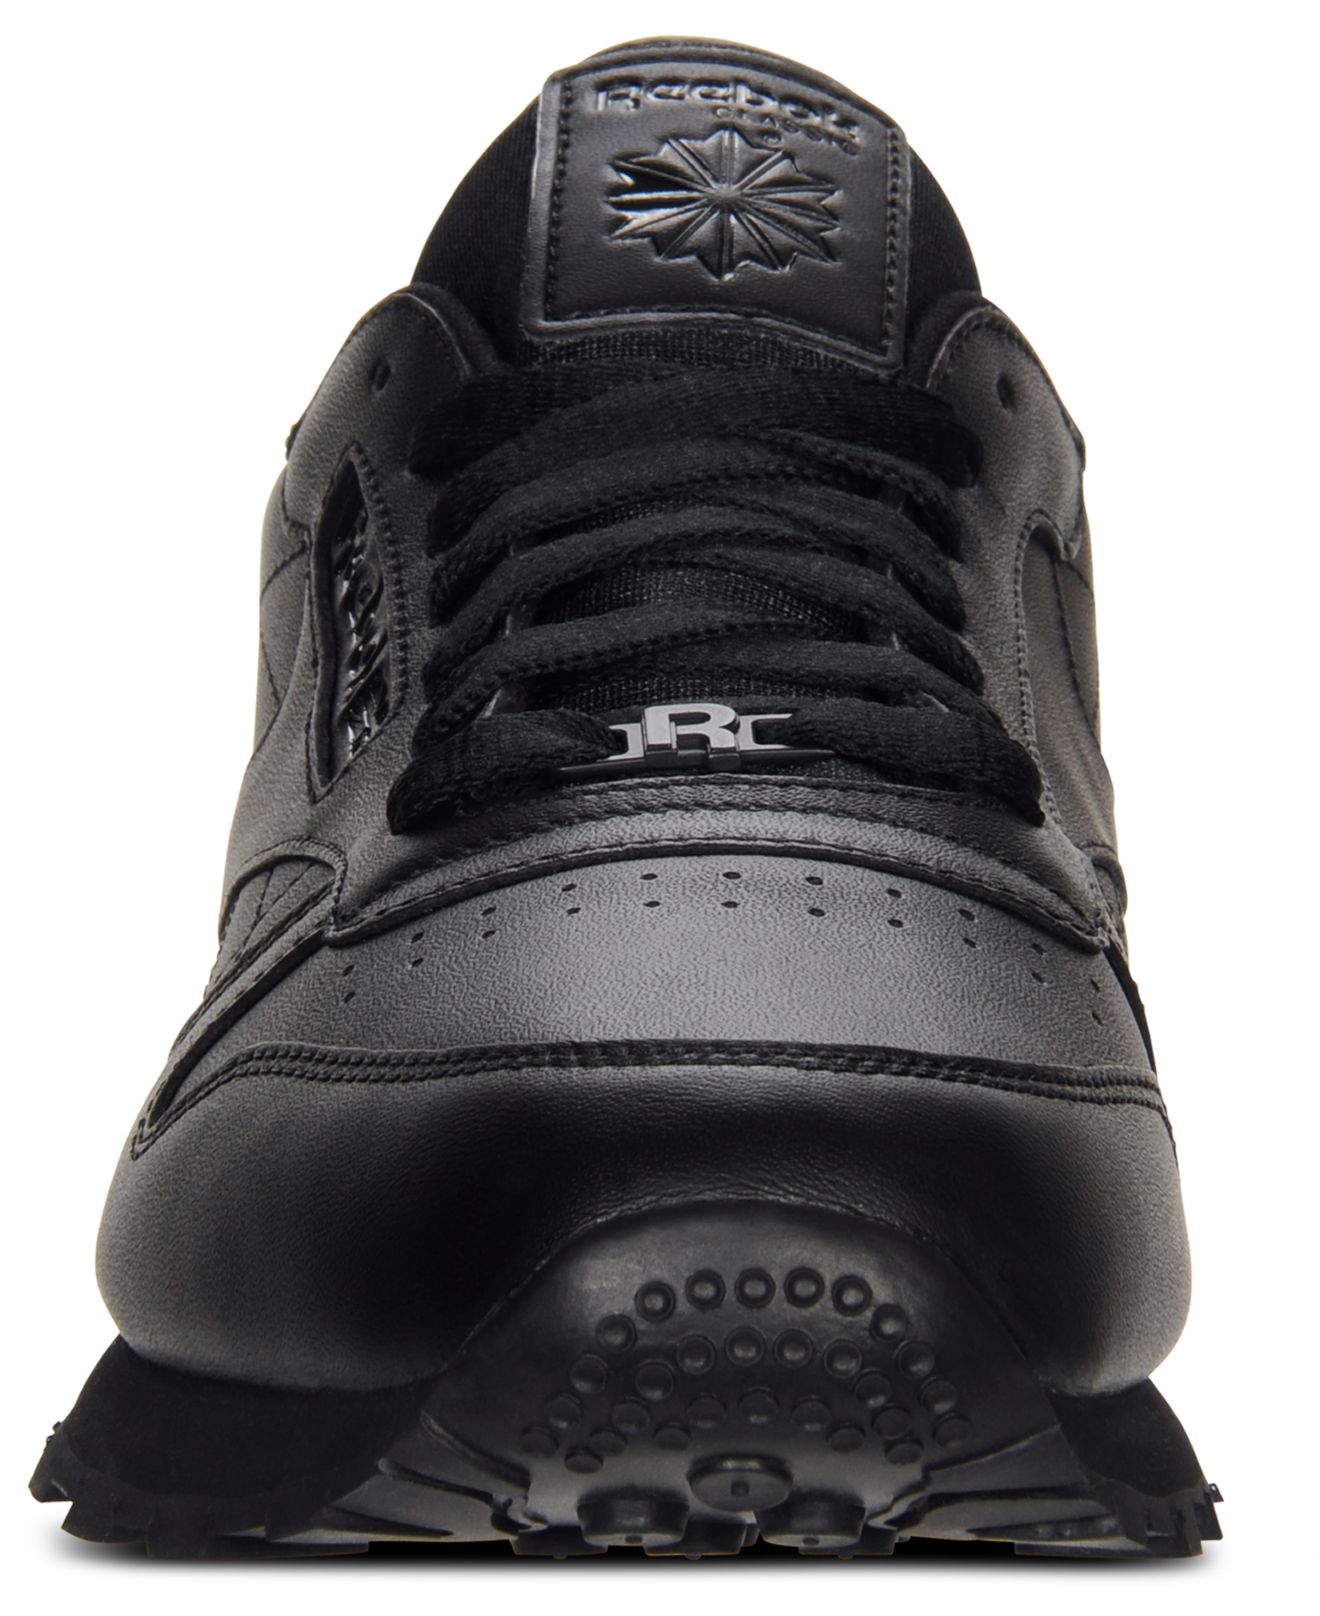 mens reebok classic high top black